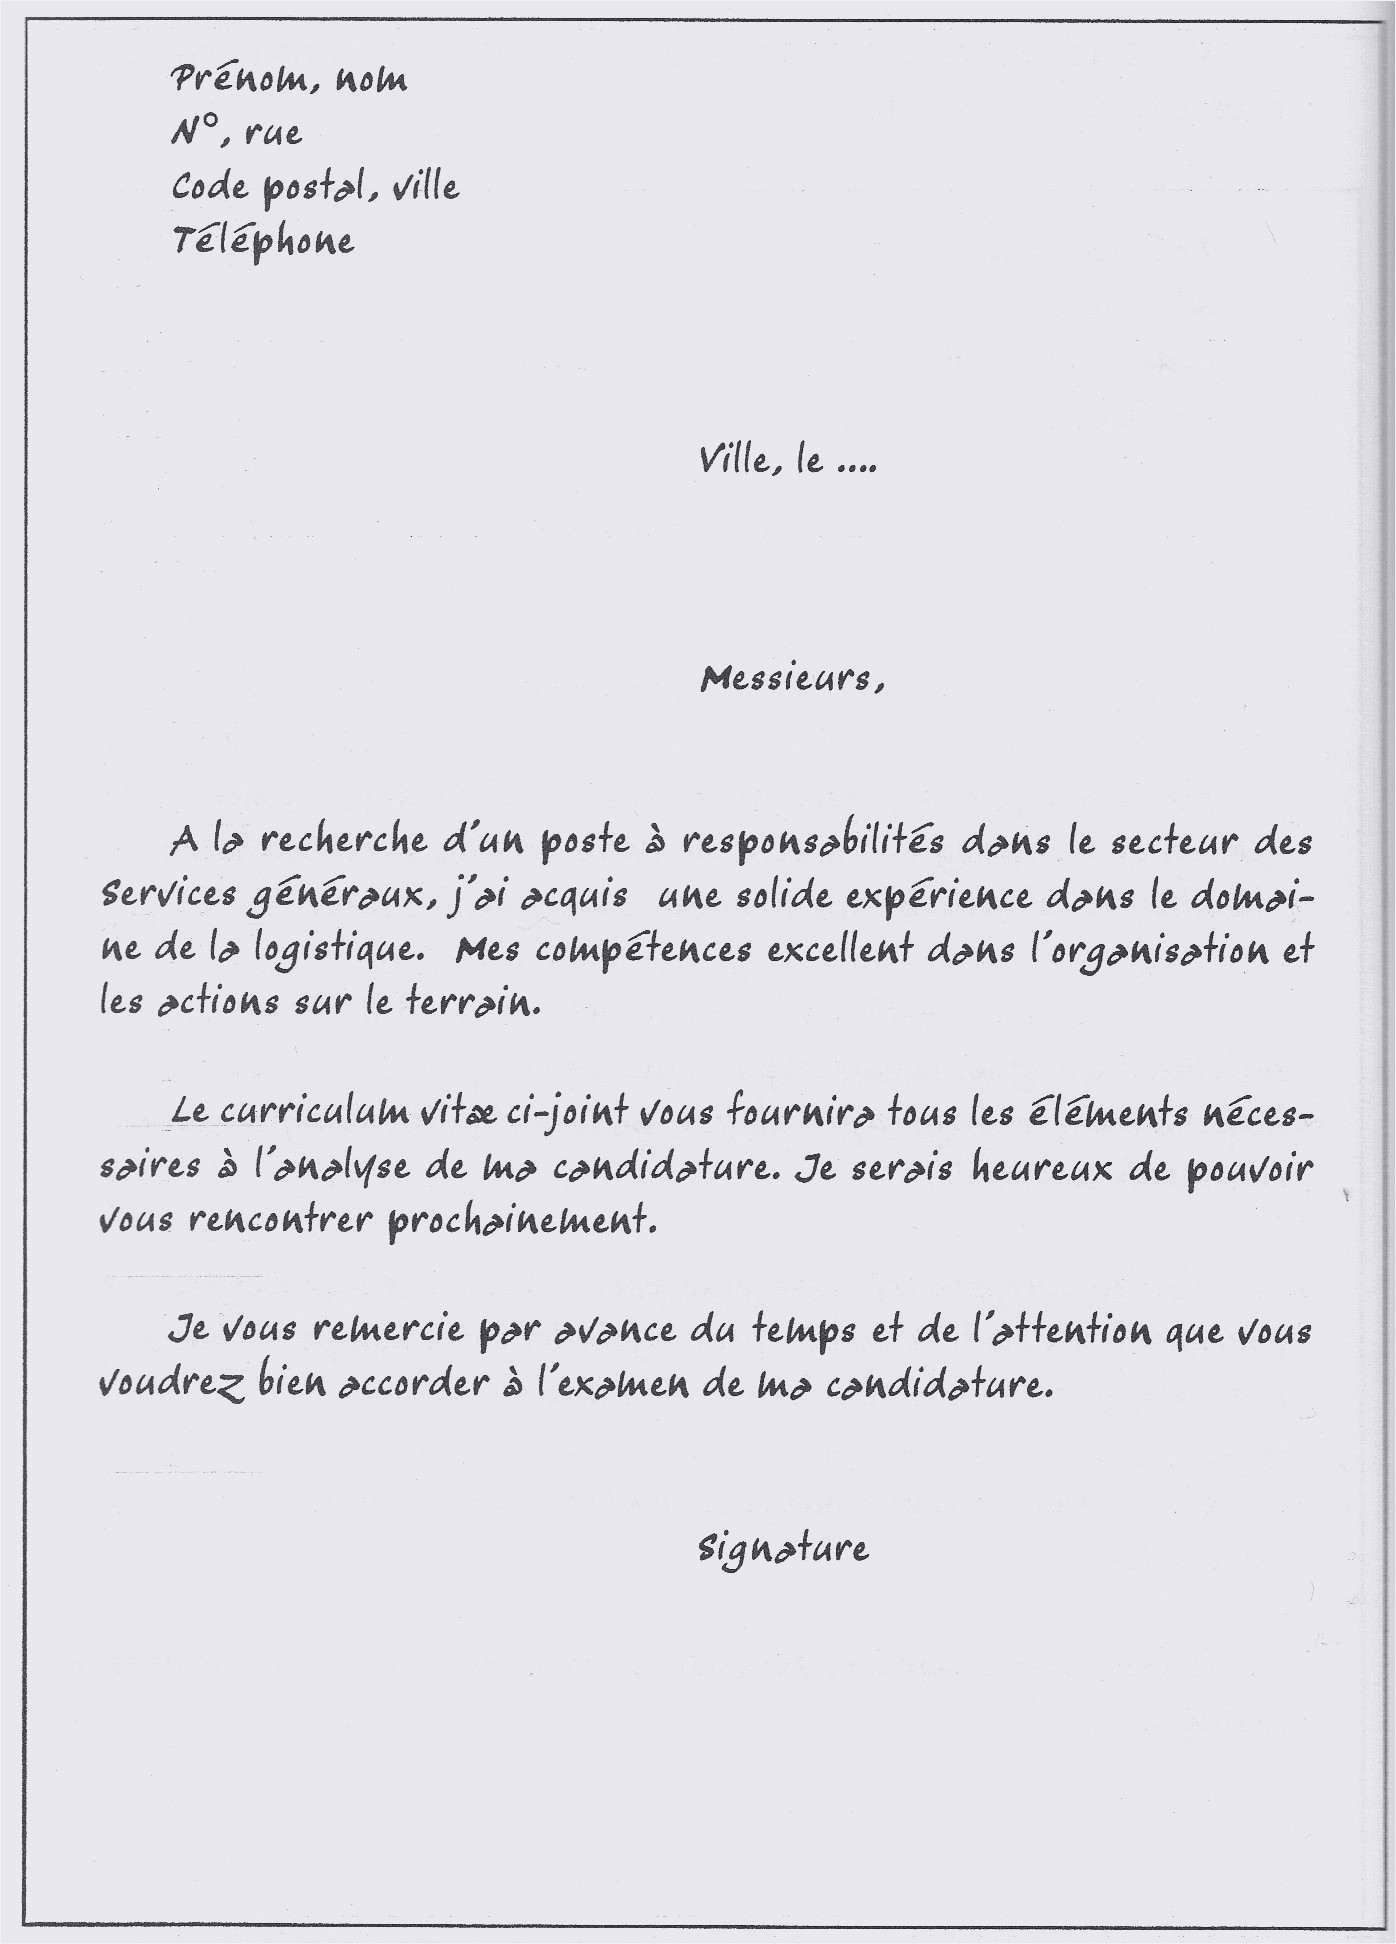 Lettre De Motivation Manutentionnaire Exemple De Lettre De Motivation Manutentionnaire Exemple Lettre